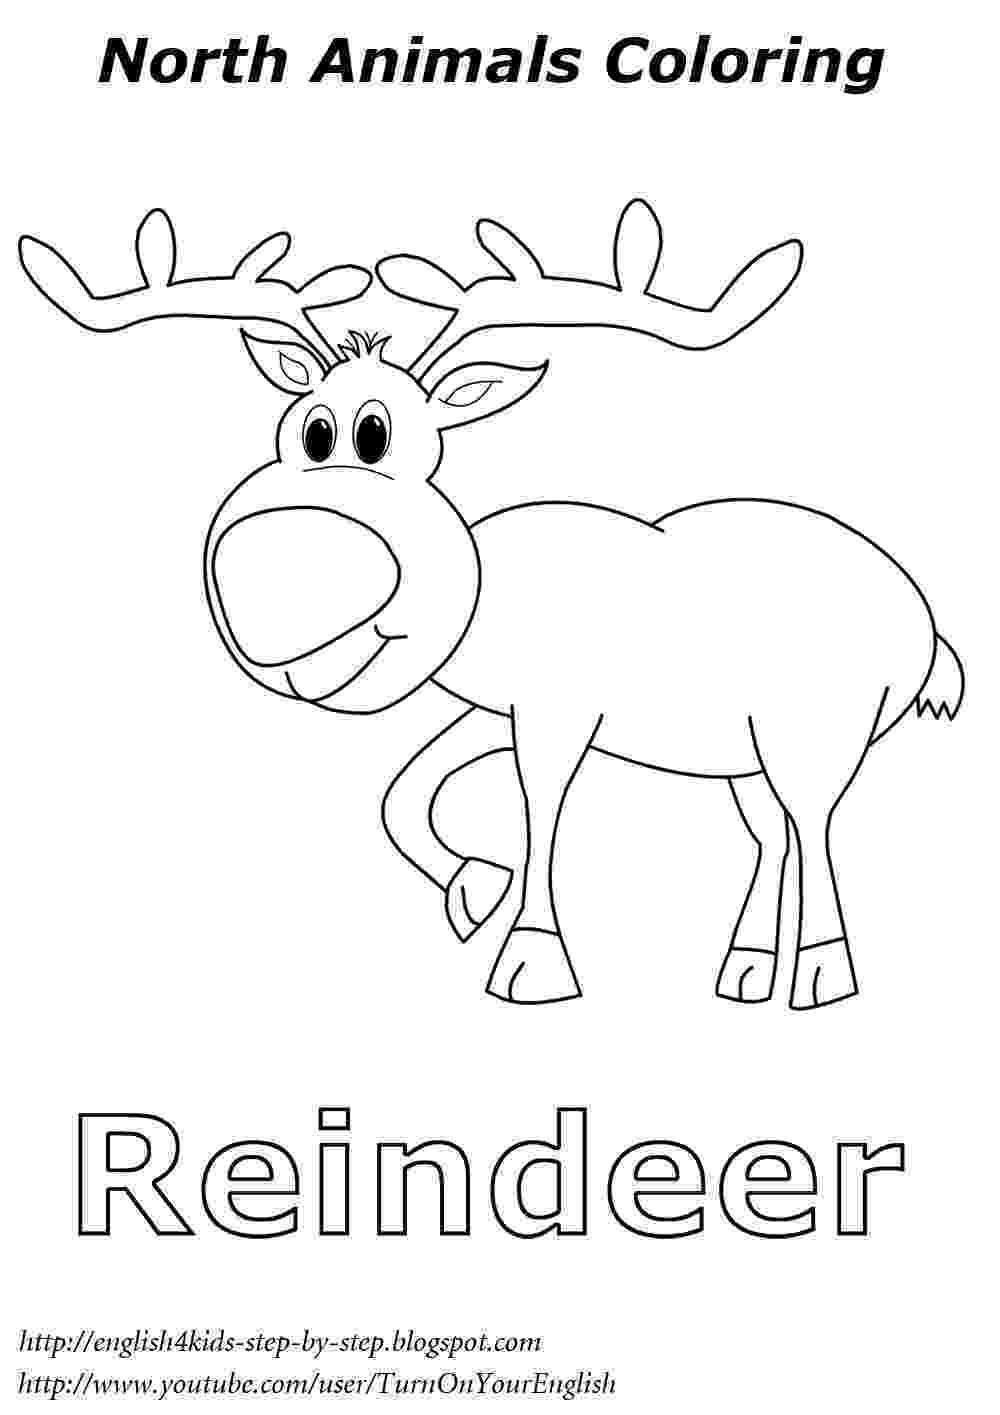 arctic animals coloring pages for preschoolers polar animals printable templates coloring pages coloring preschoolers arctic animals pages for